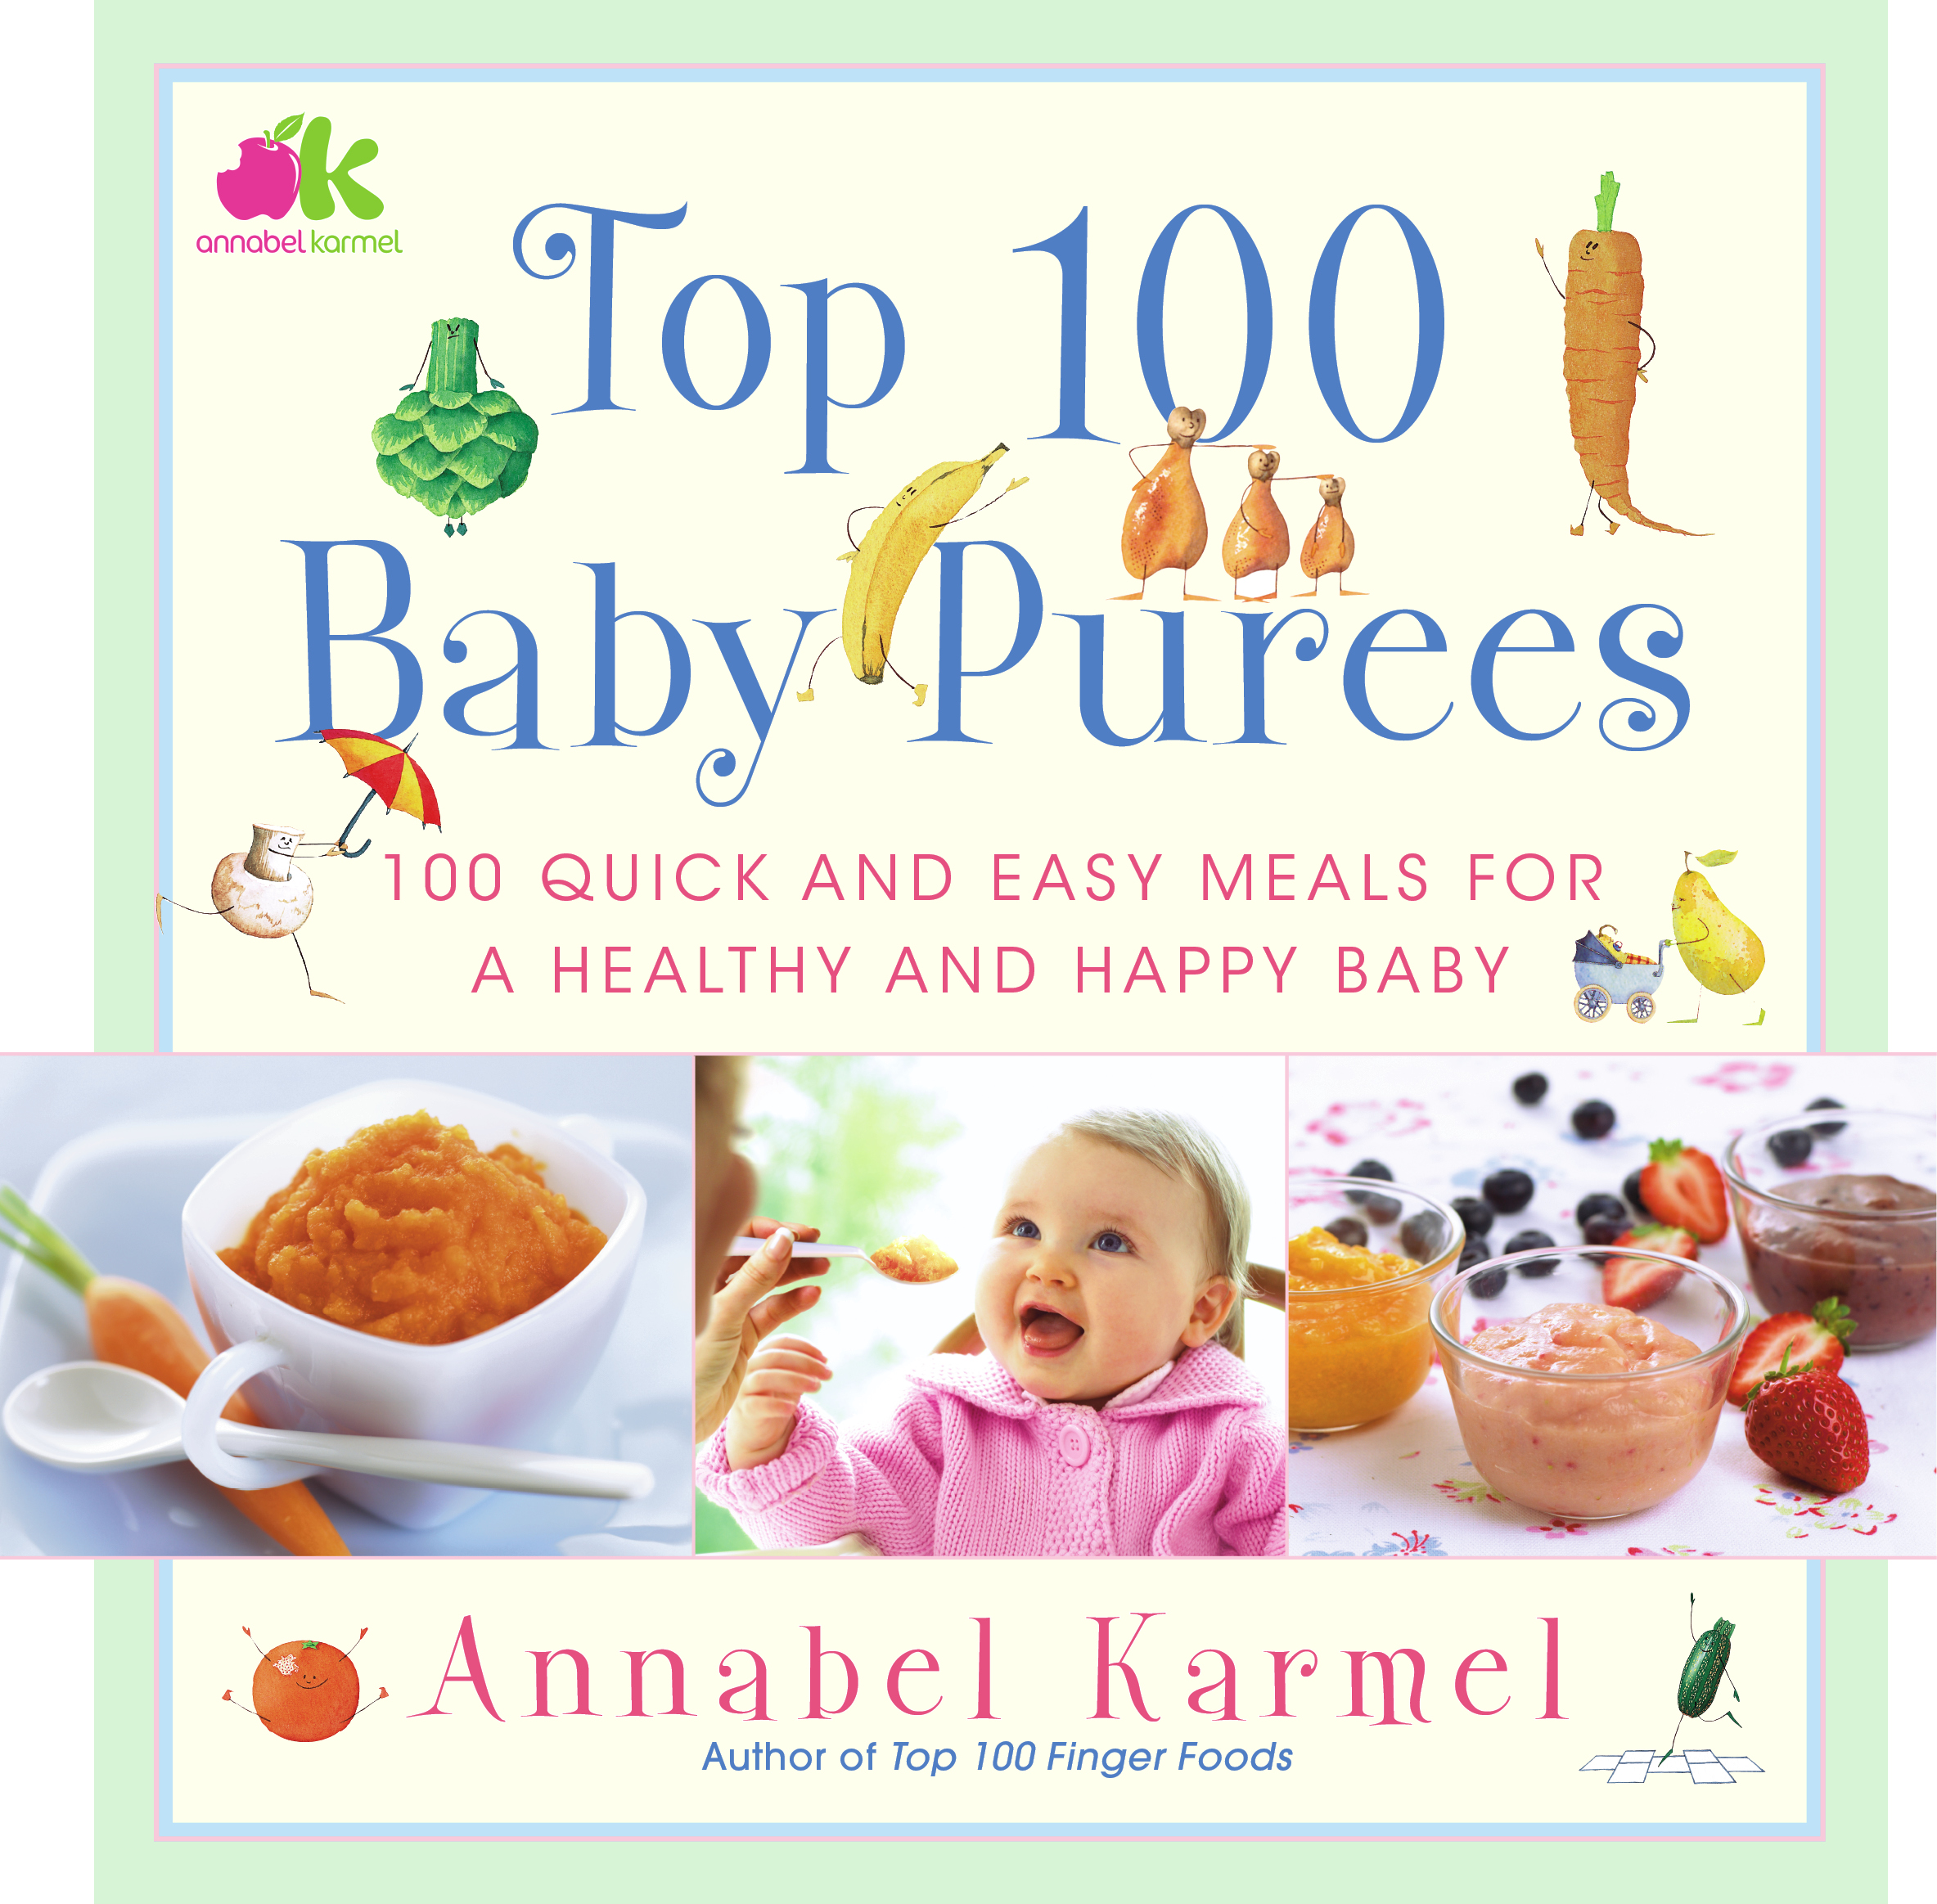 Top 100 baby purees book by annabel karmel official publisher cvr9780743289573 9780743289573 hr forumfinder Image collections